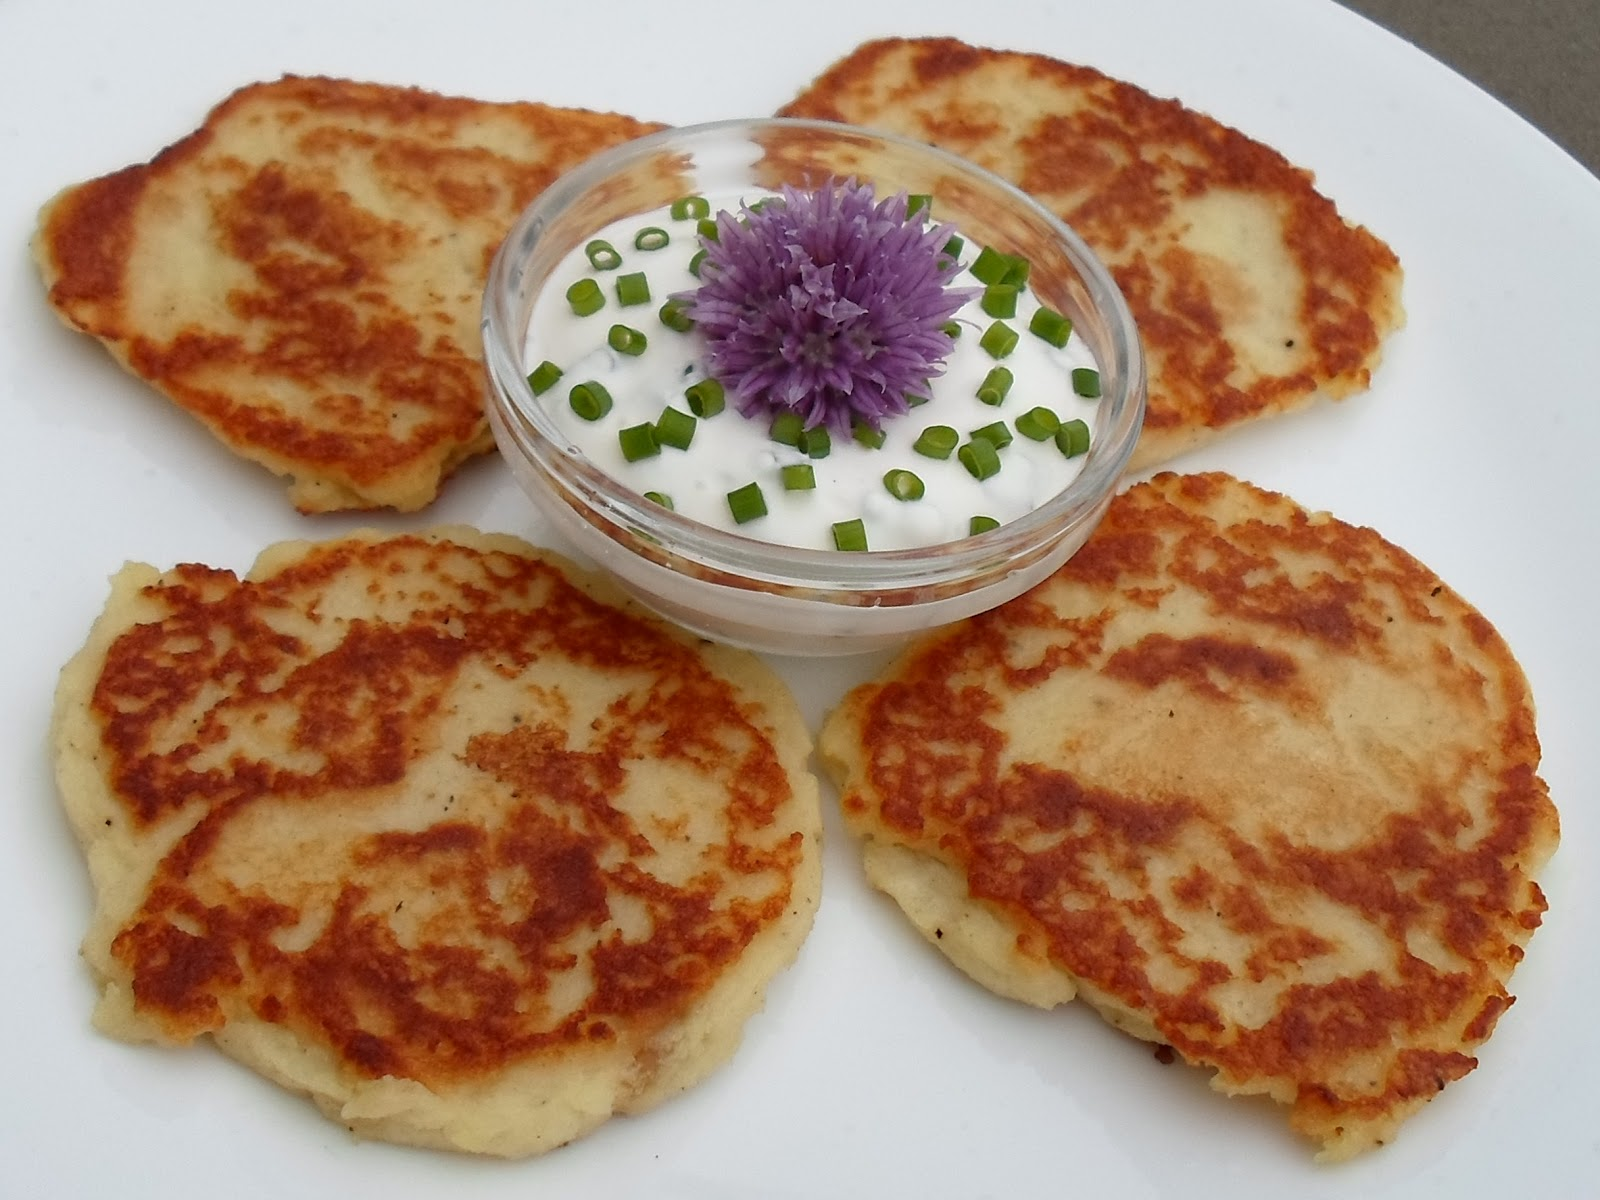 Happier Than A Pig In Mud: Roasted Garlic Potato Cakes